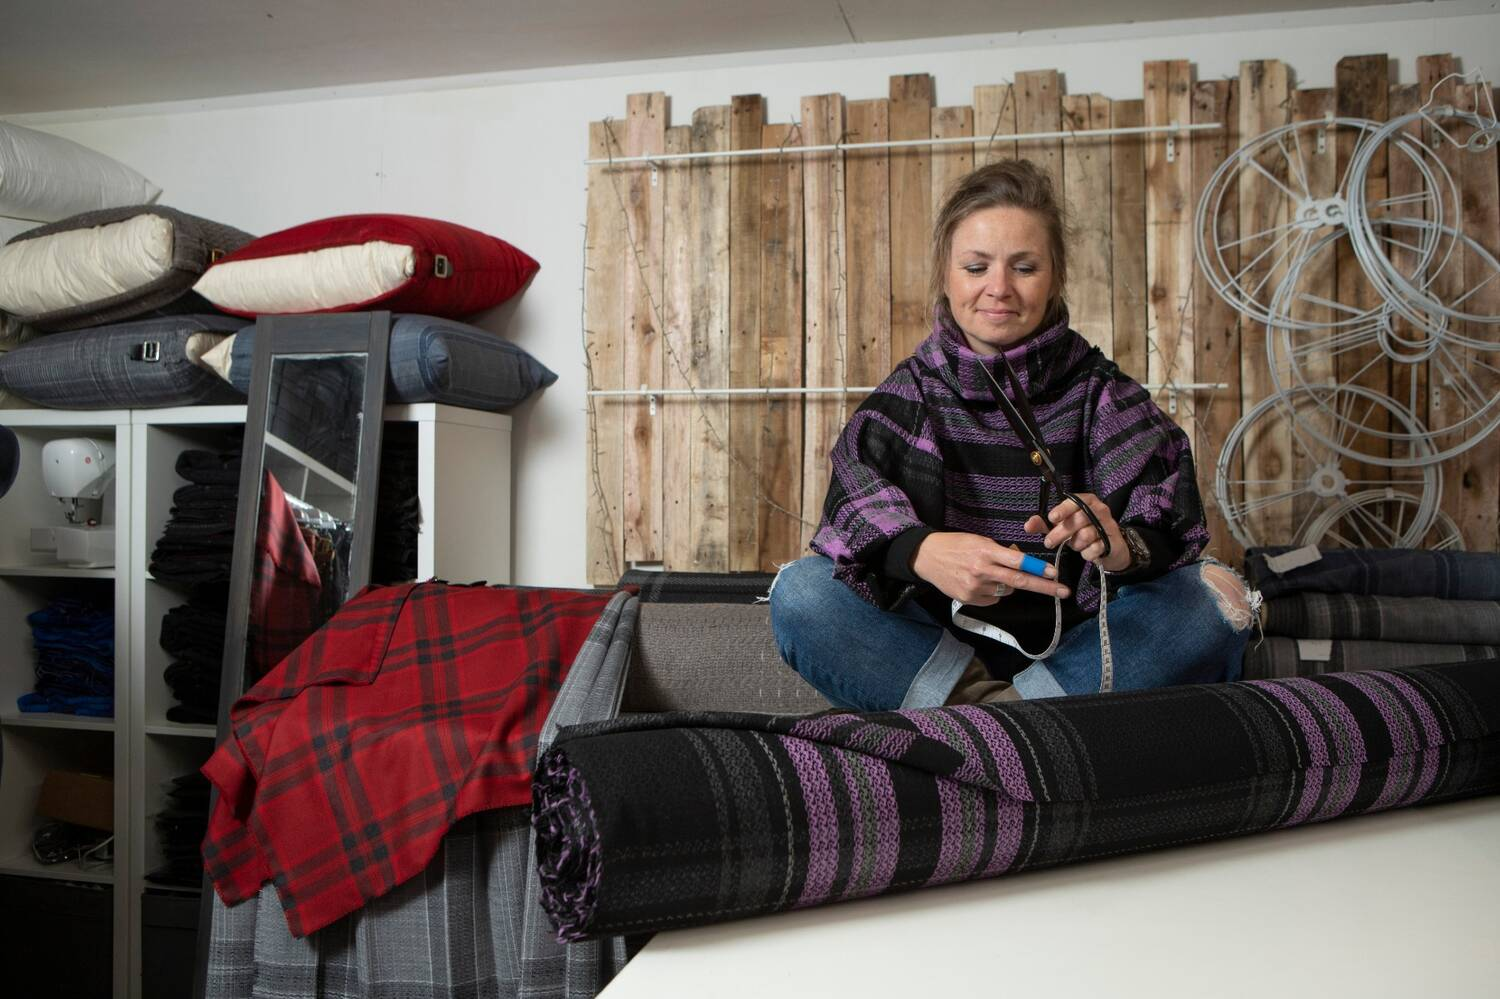 A woman sits cross-legged on the floor with a roll of tartan textile in front of her.